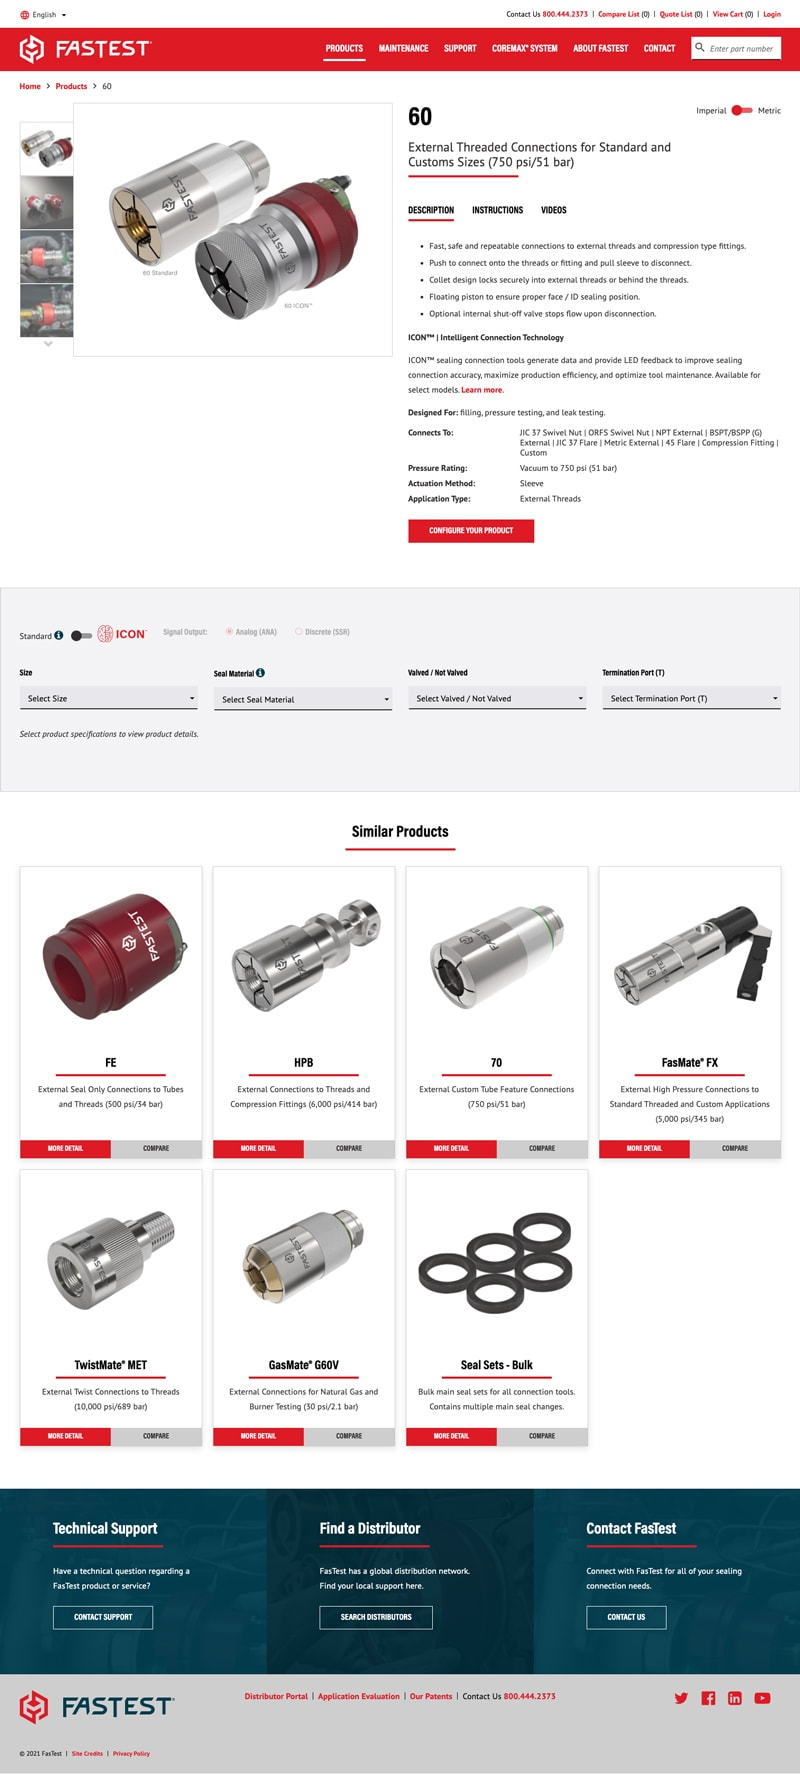 B2B Sealing Connection Tools Manufacturer Web Design FasTest Product Page